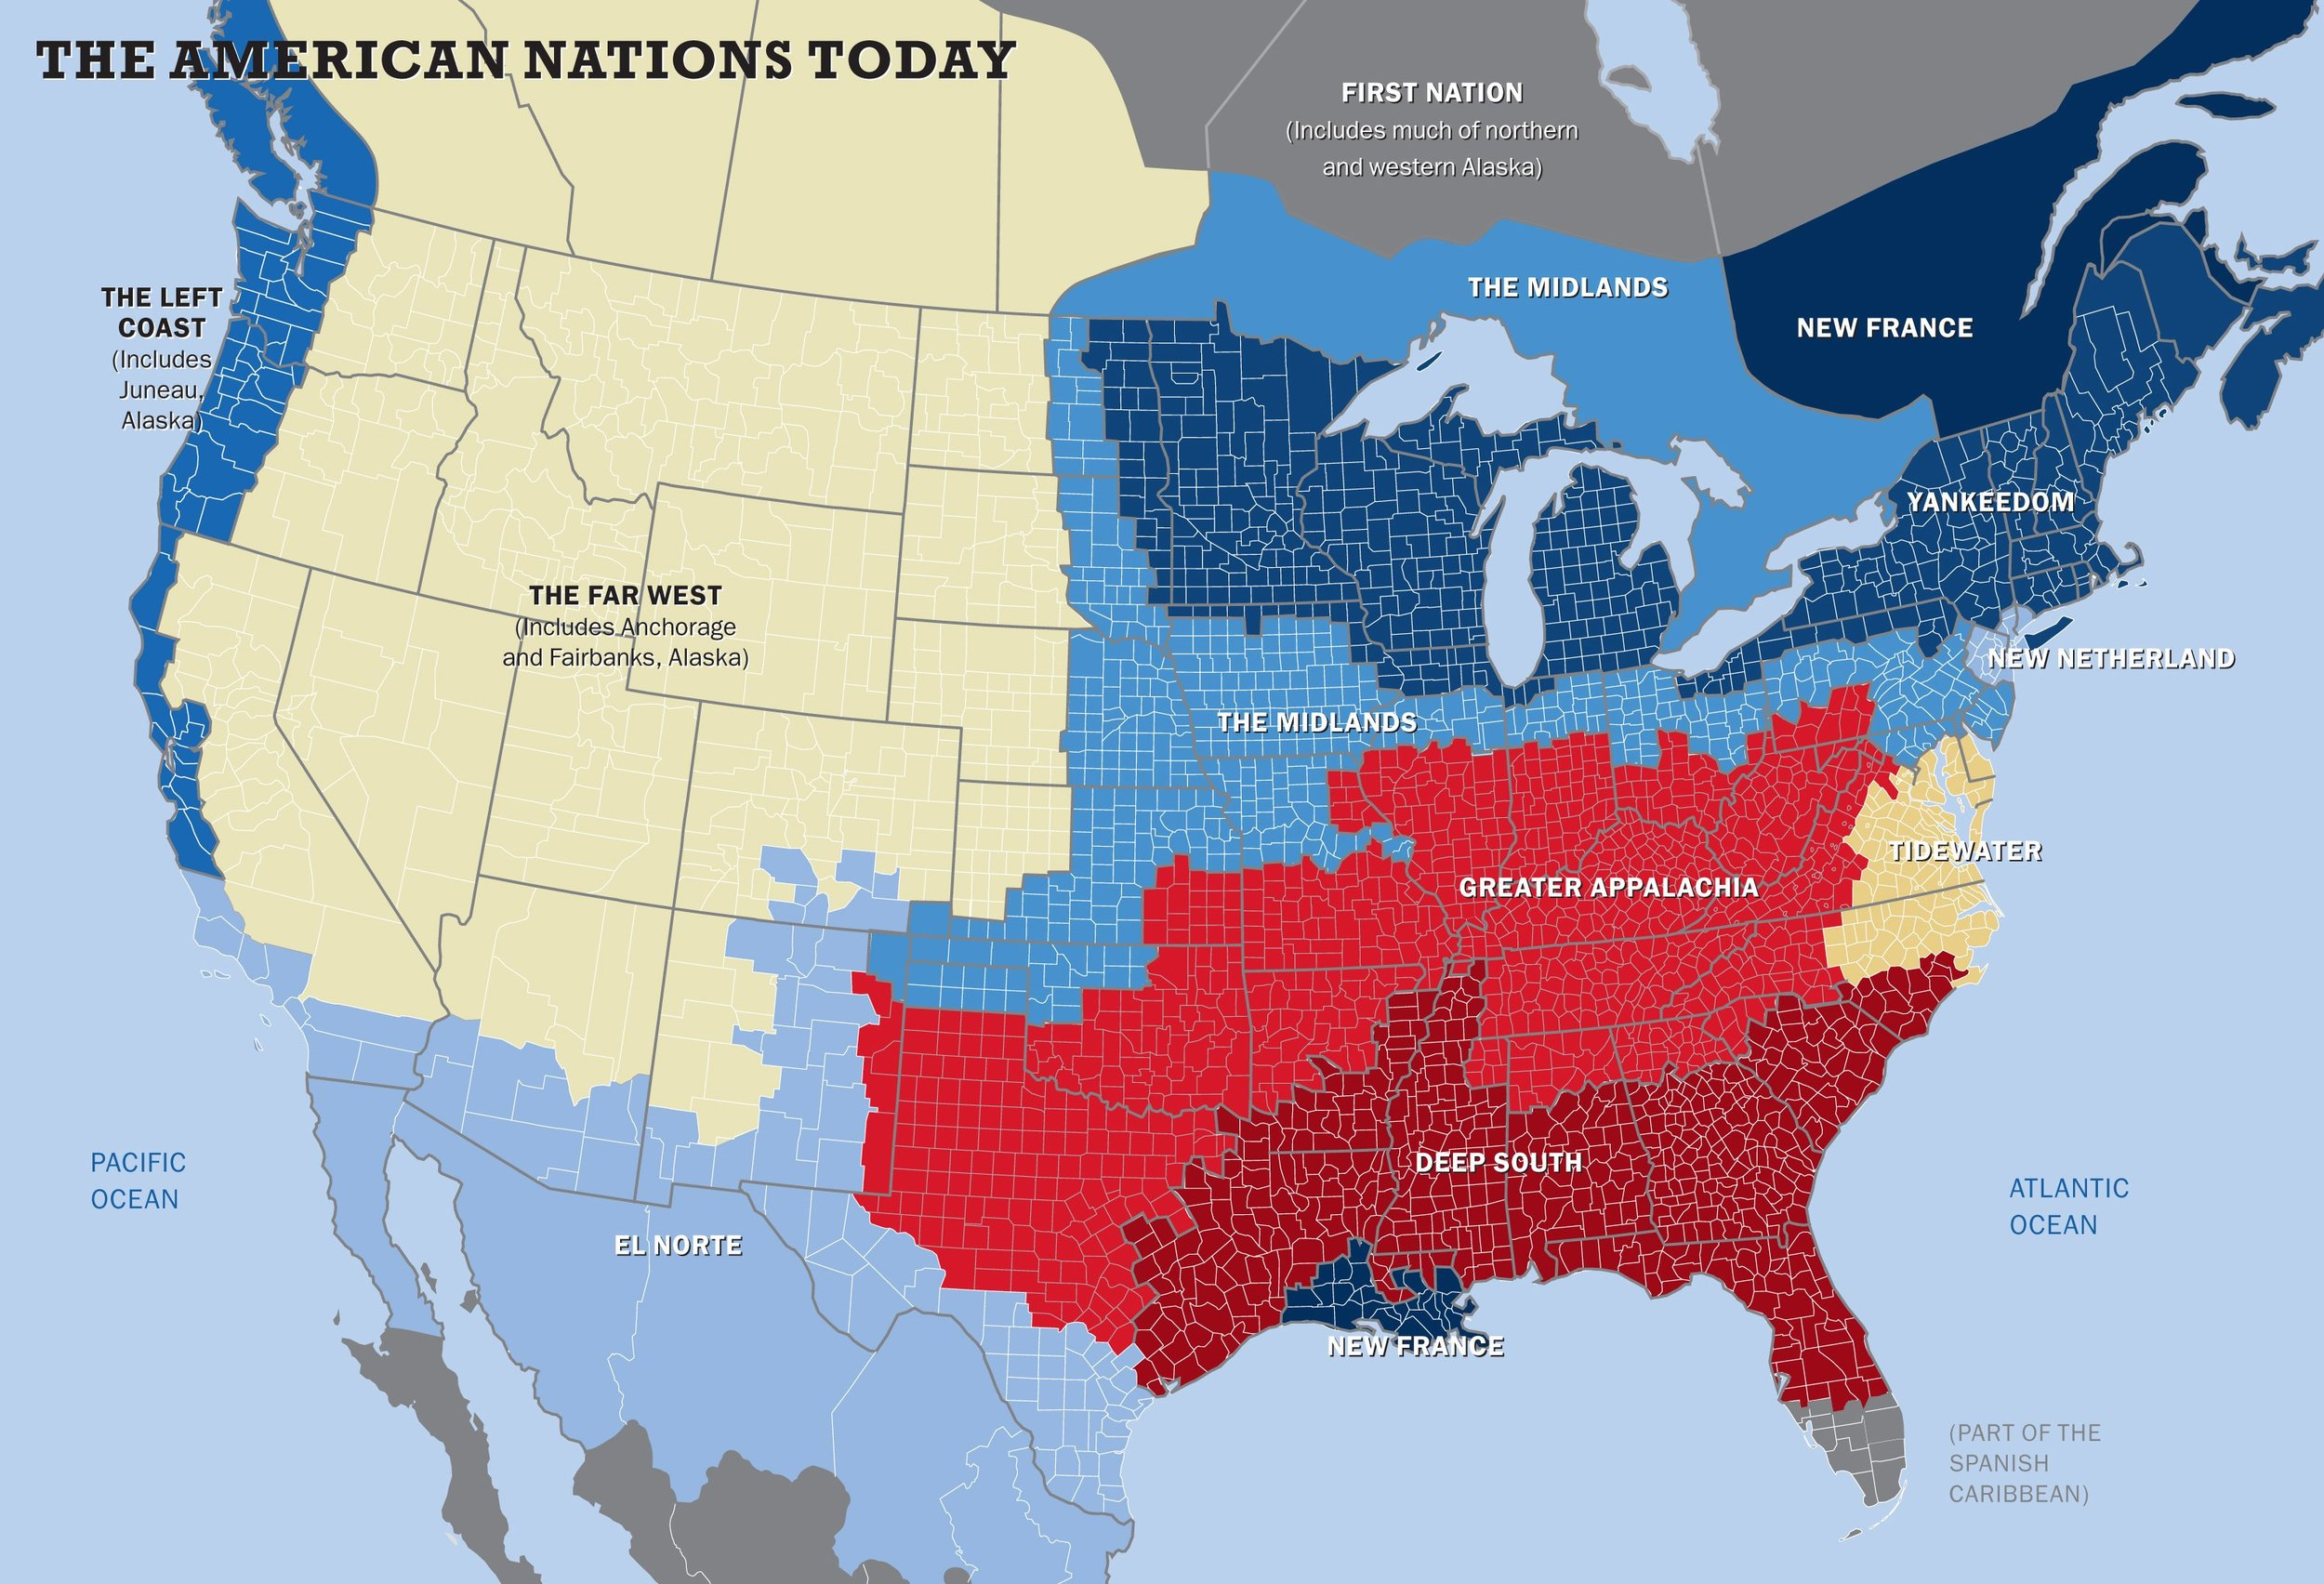 Business Insider: This map shows the US really has 11 separate 'nations' with entirely different cultures